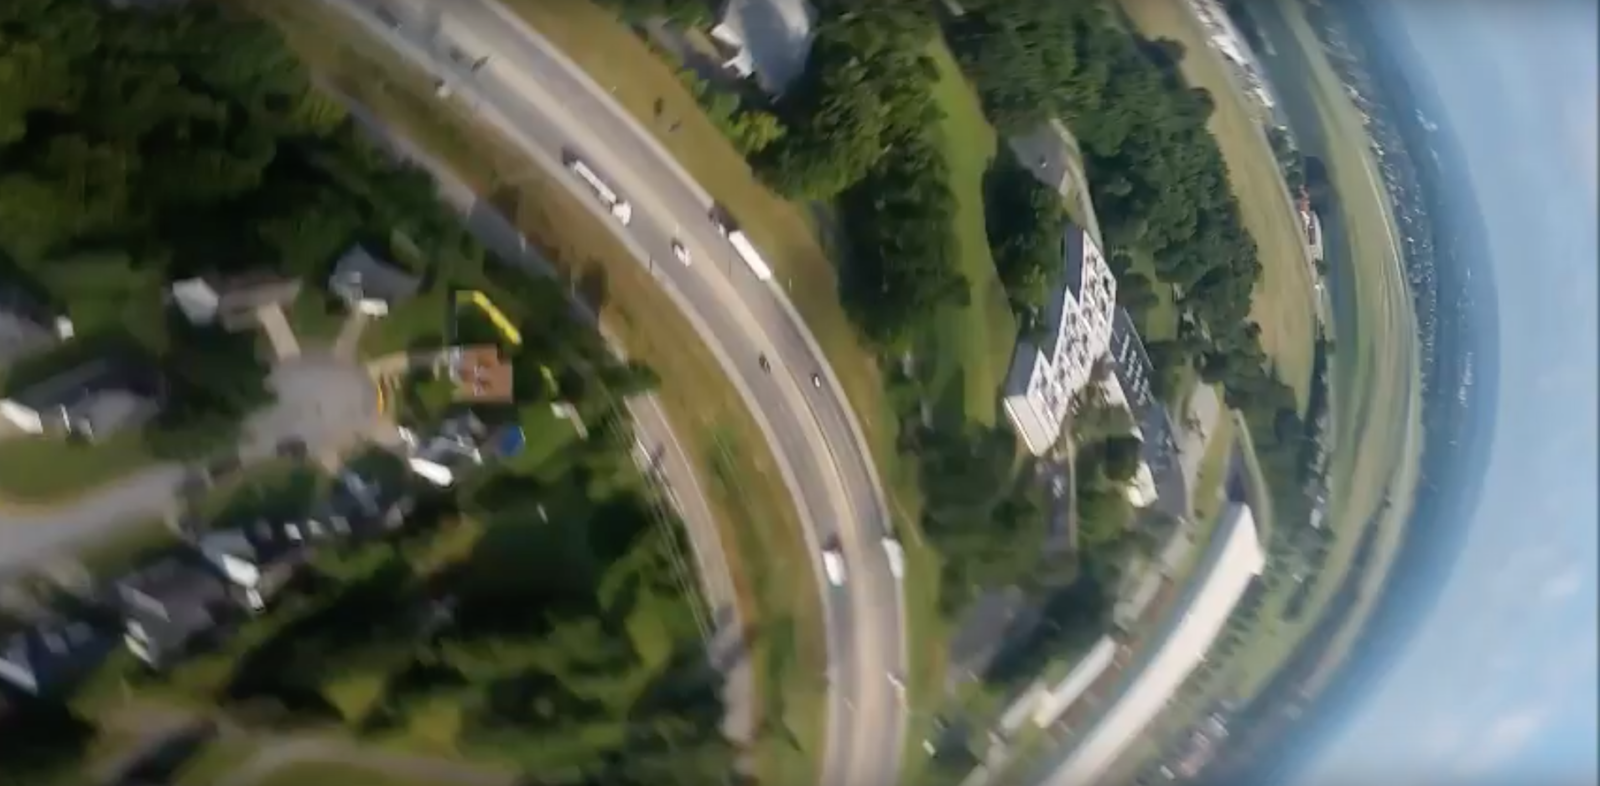 A Pilot Dropped His Phone From a Plane, and It Recorded the Entire Fall (Video)